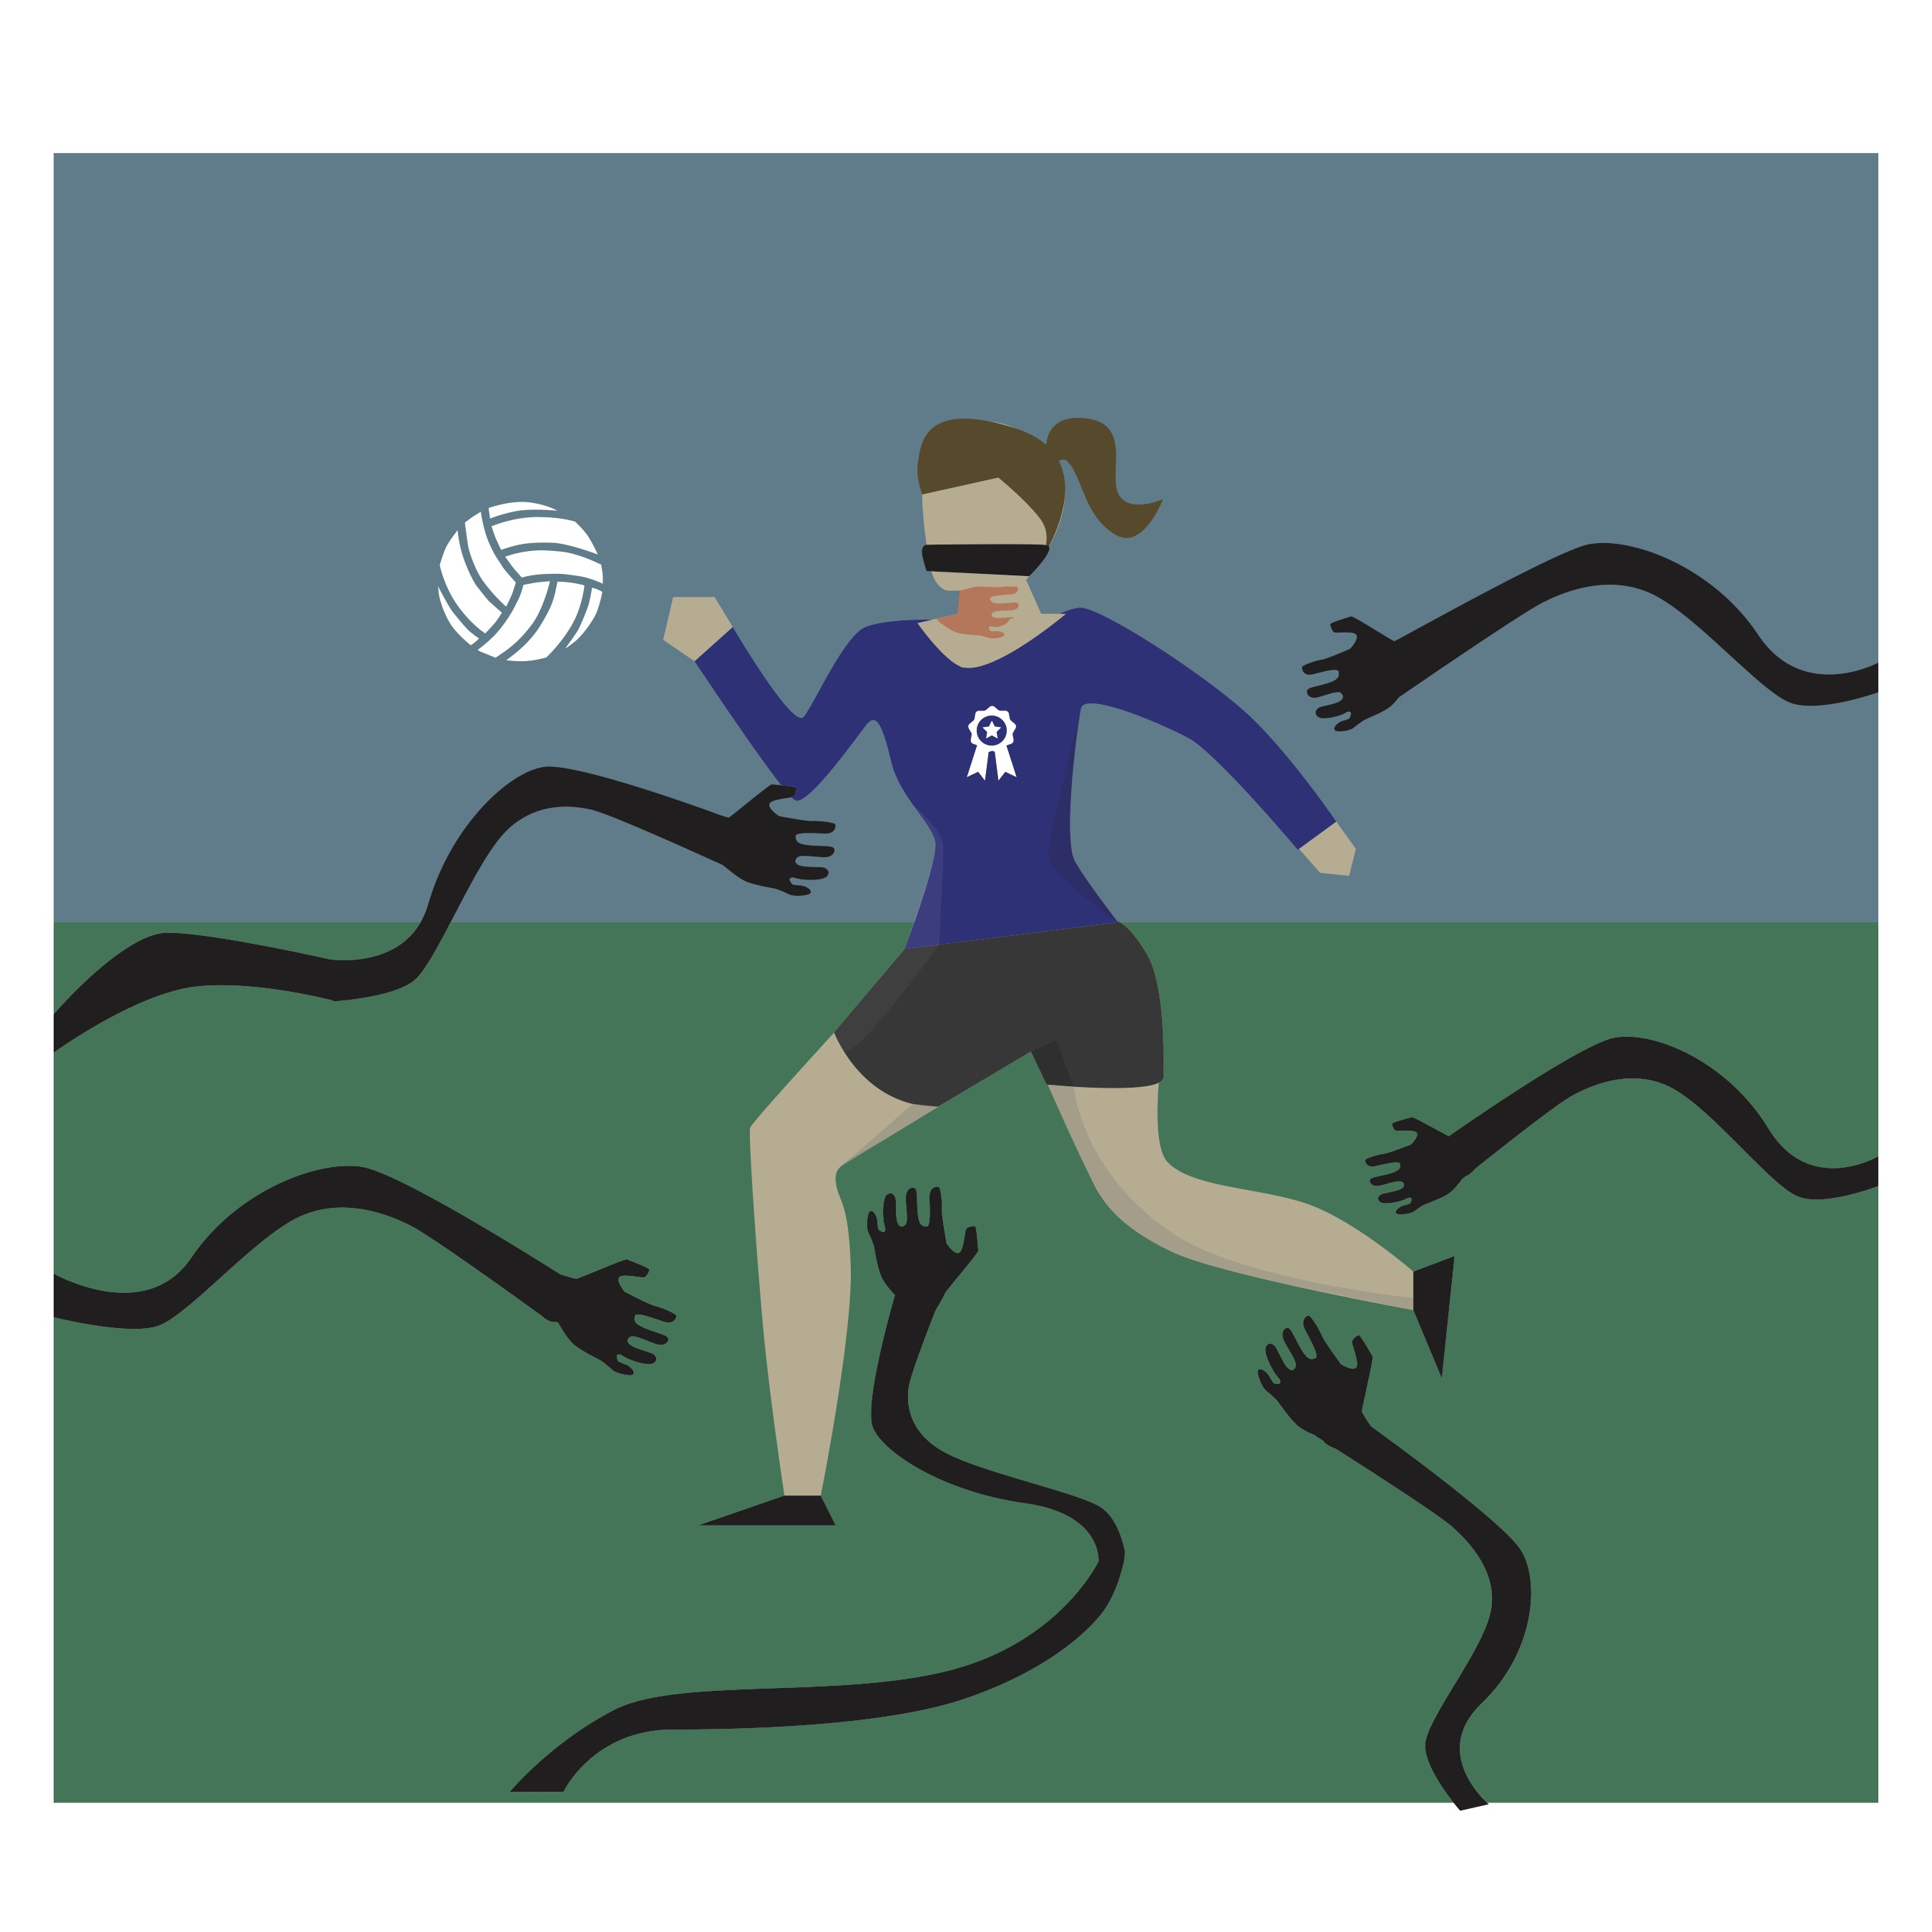 Drawing of female athlete with creepy arms reaching out for her.